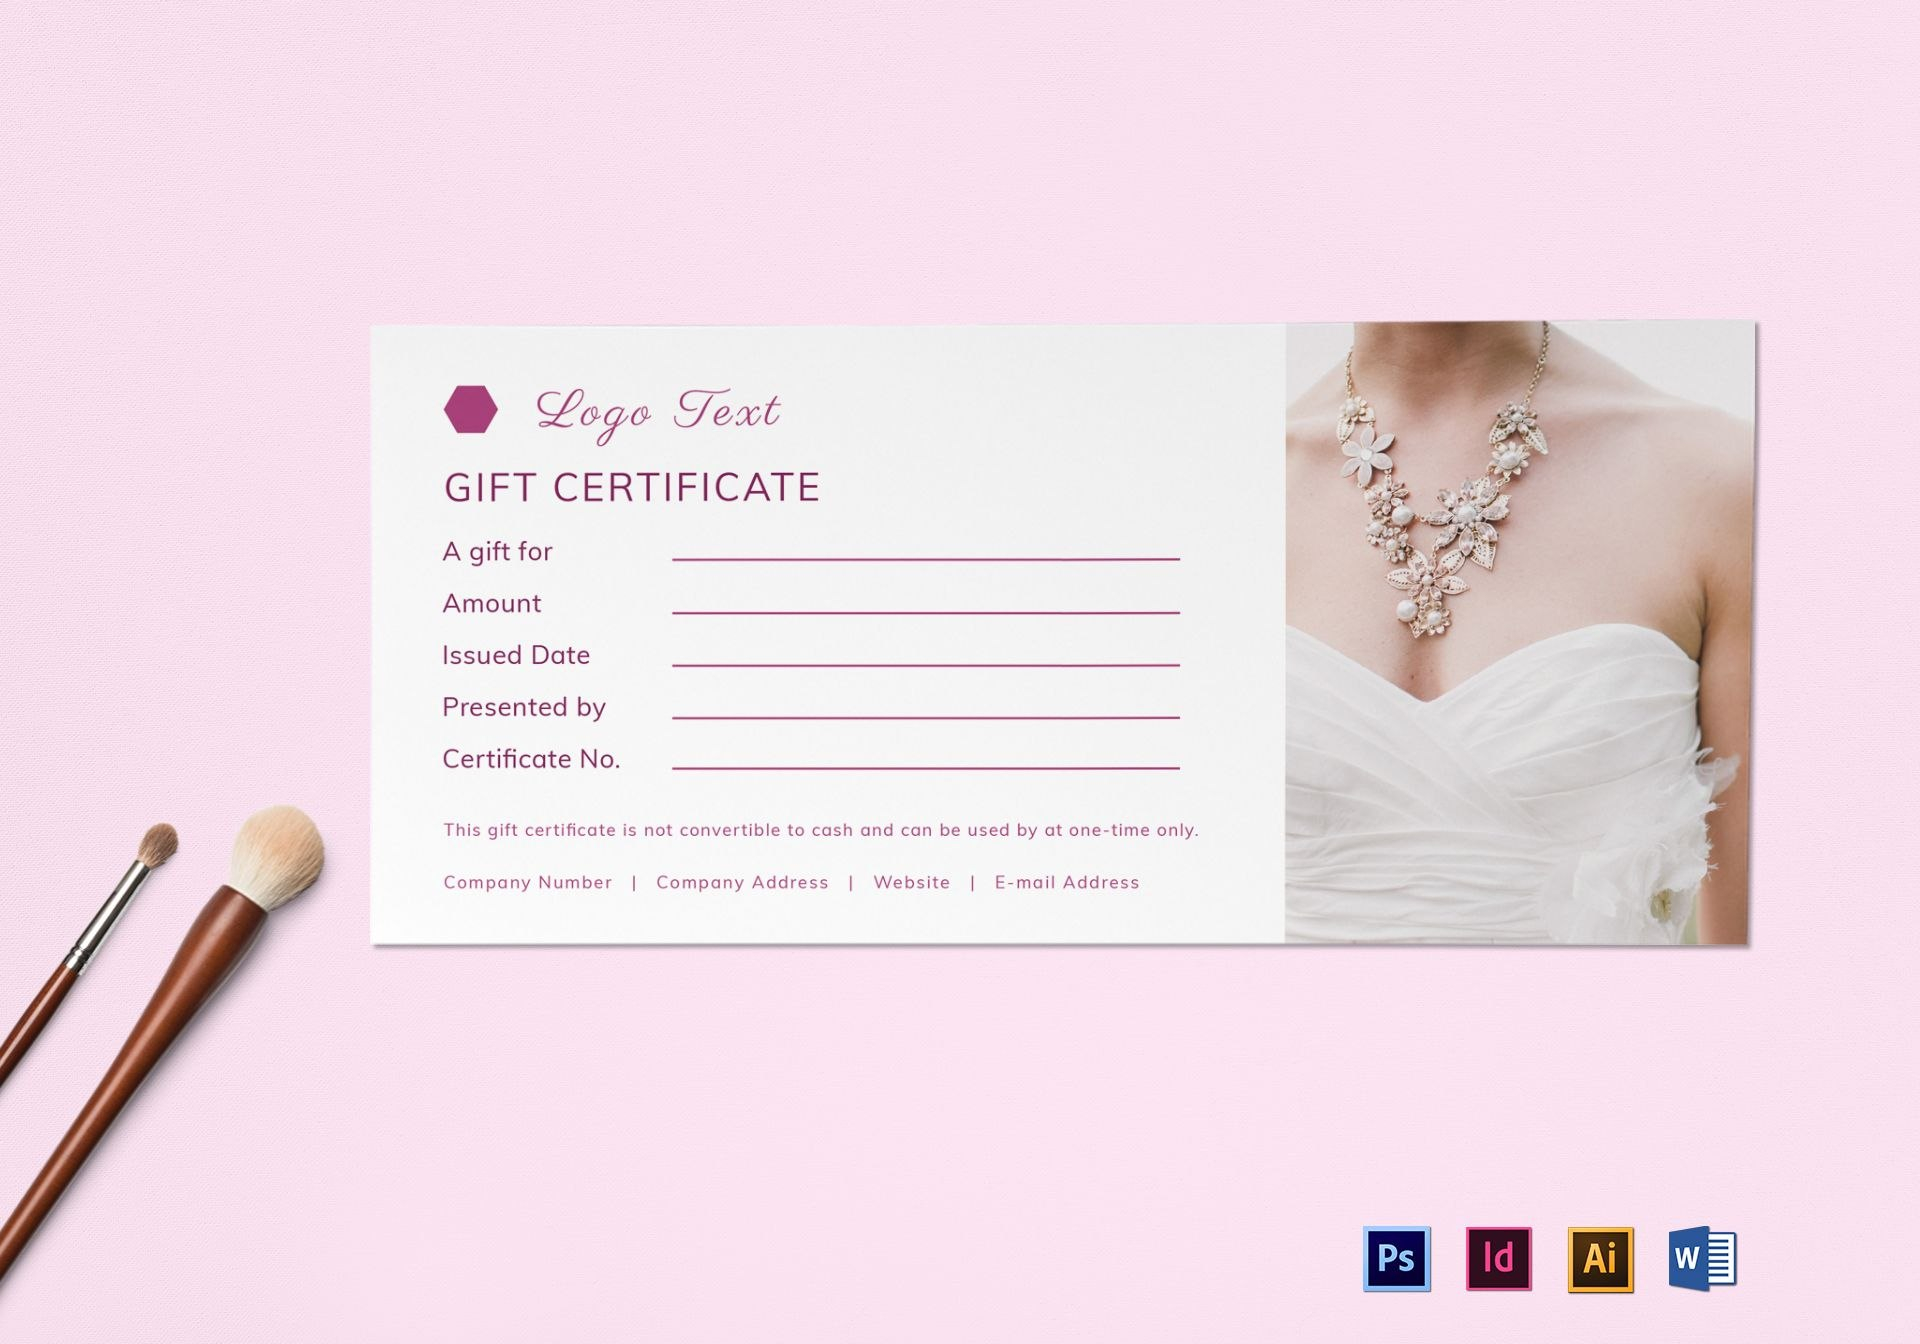 Blank Gift Certificate Design Template In Psd Word Illustrator Pertaining To Gift Certificate Template Indesign